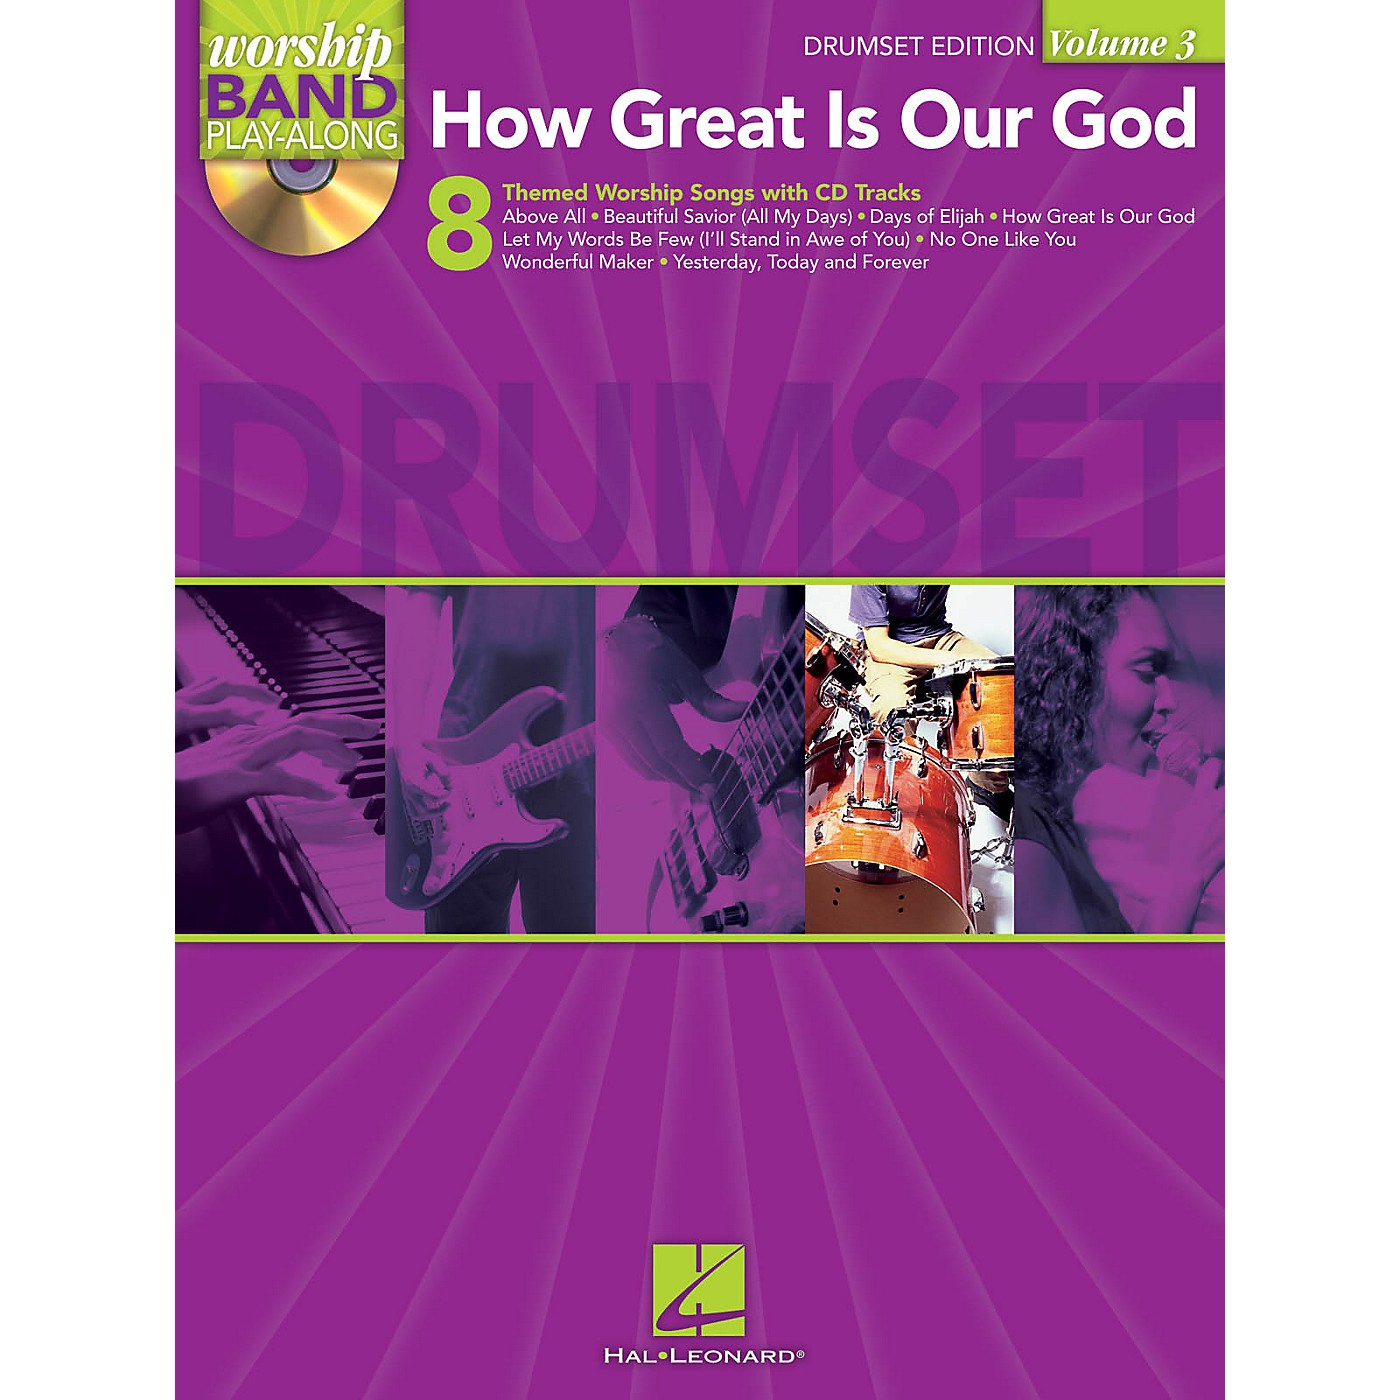 Hal Leonard How Great Is Our God - Drums Edition Worship Band Play-Along Series Softcover with CD thumbnail